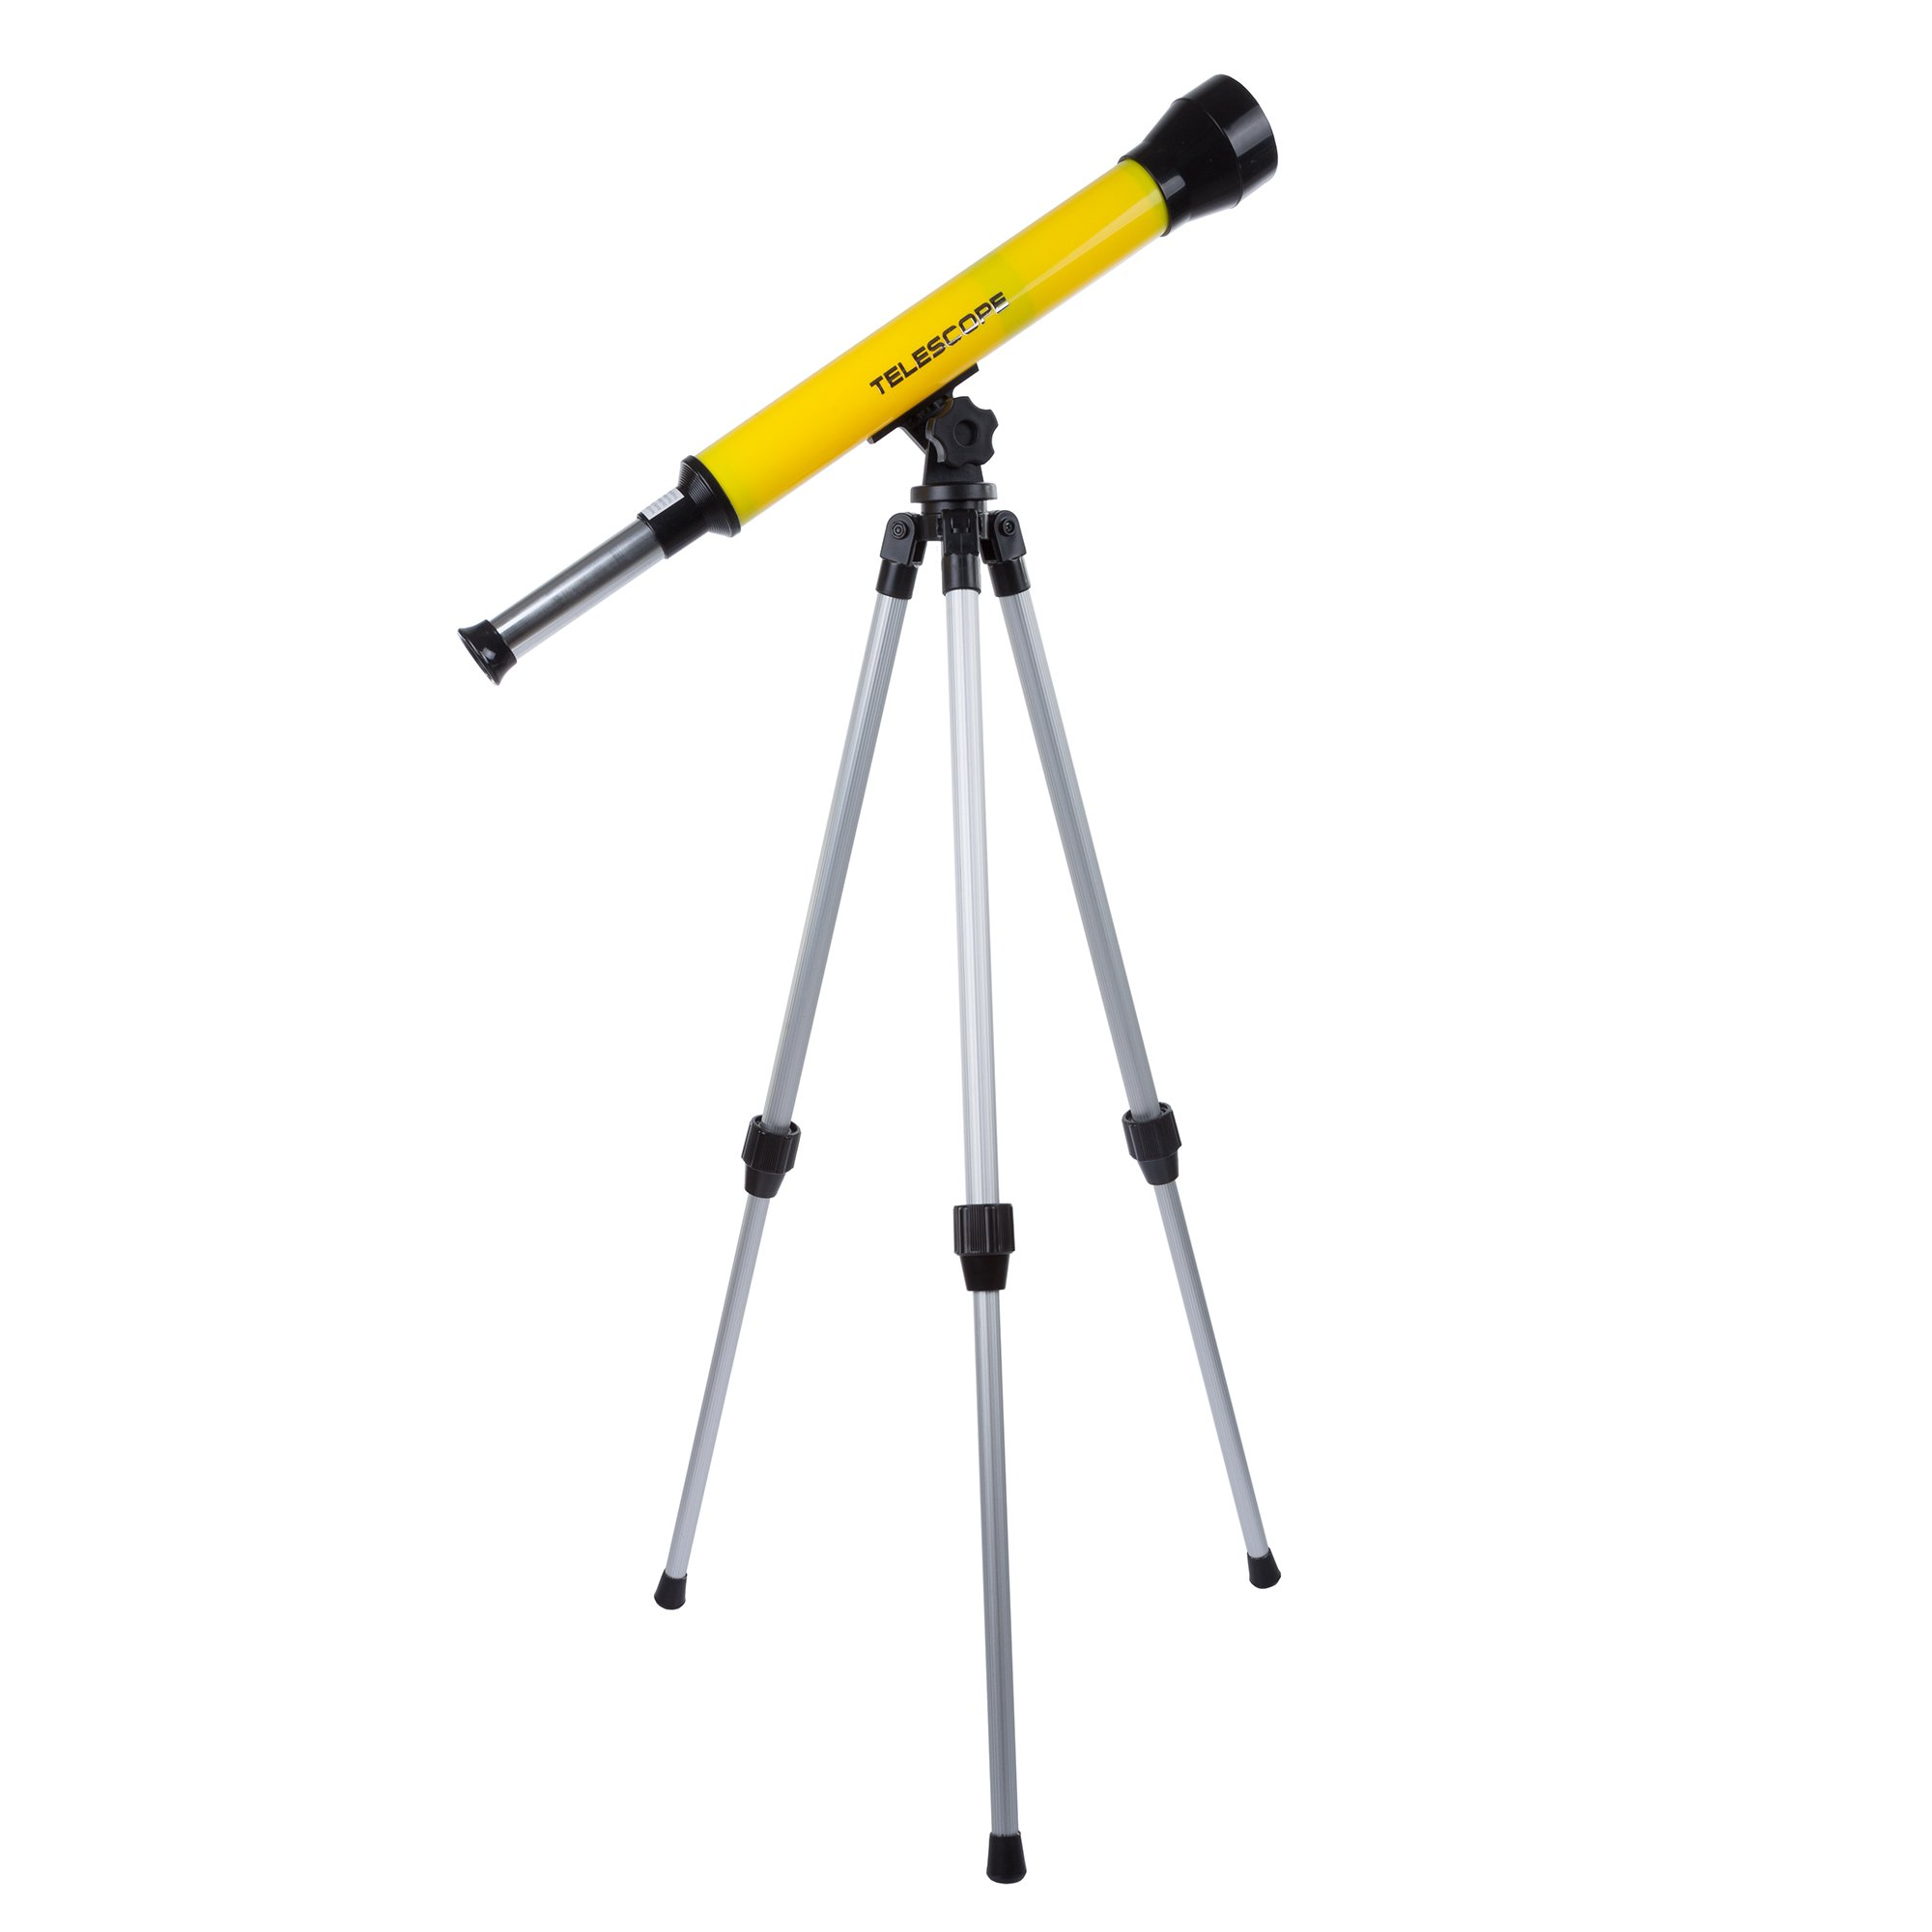 Telescope for Kids with Tripod - 40mm Beginner Telescope with Adjustable Tripod and 30x Magnification for Science, Nature and Astronomy by Hey! Play! by Hey! Play!